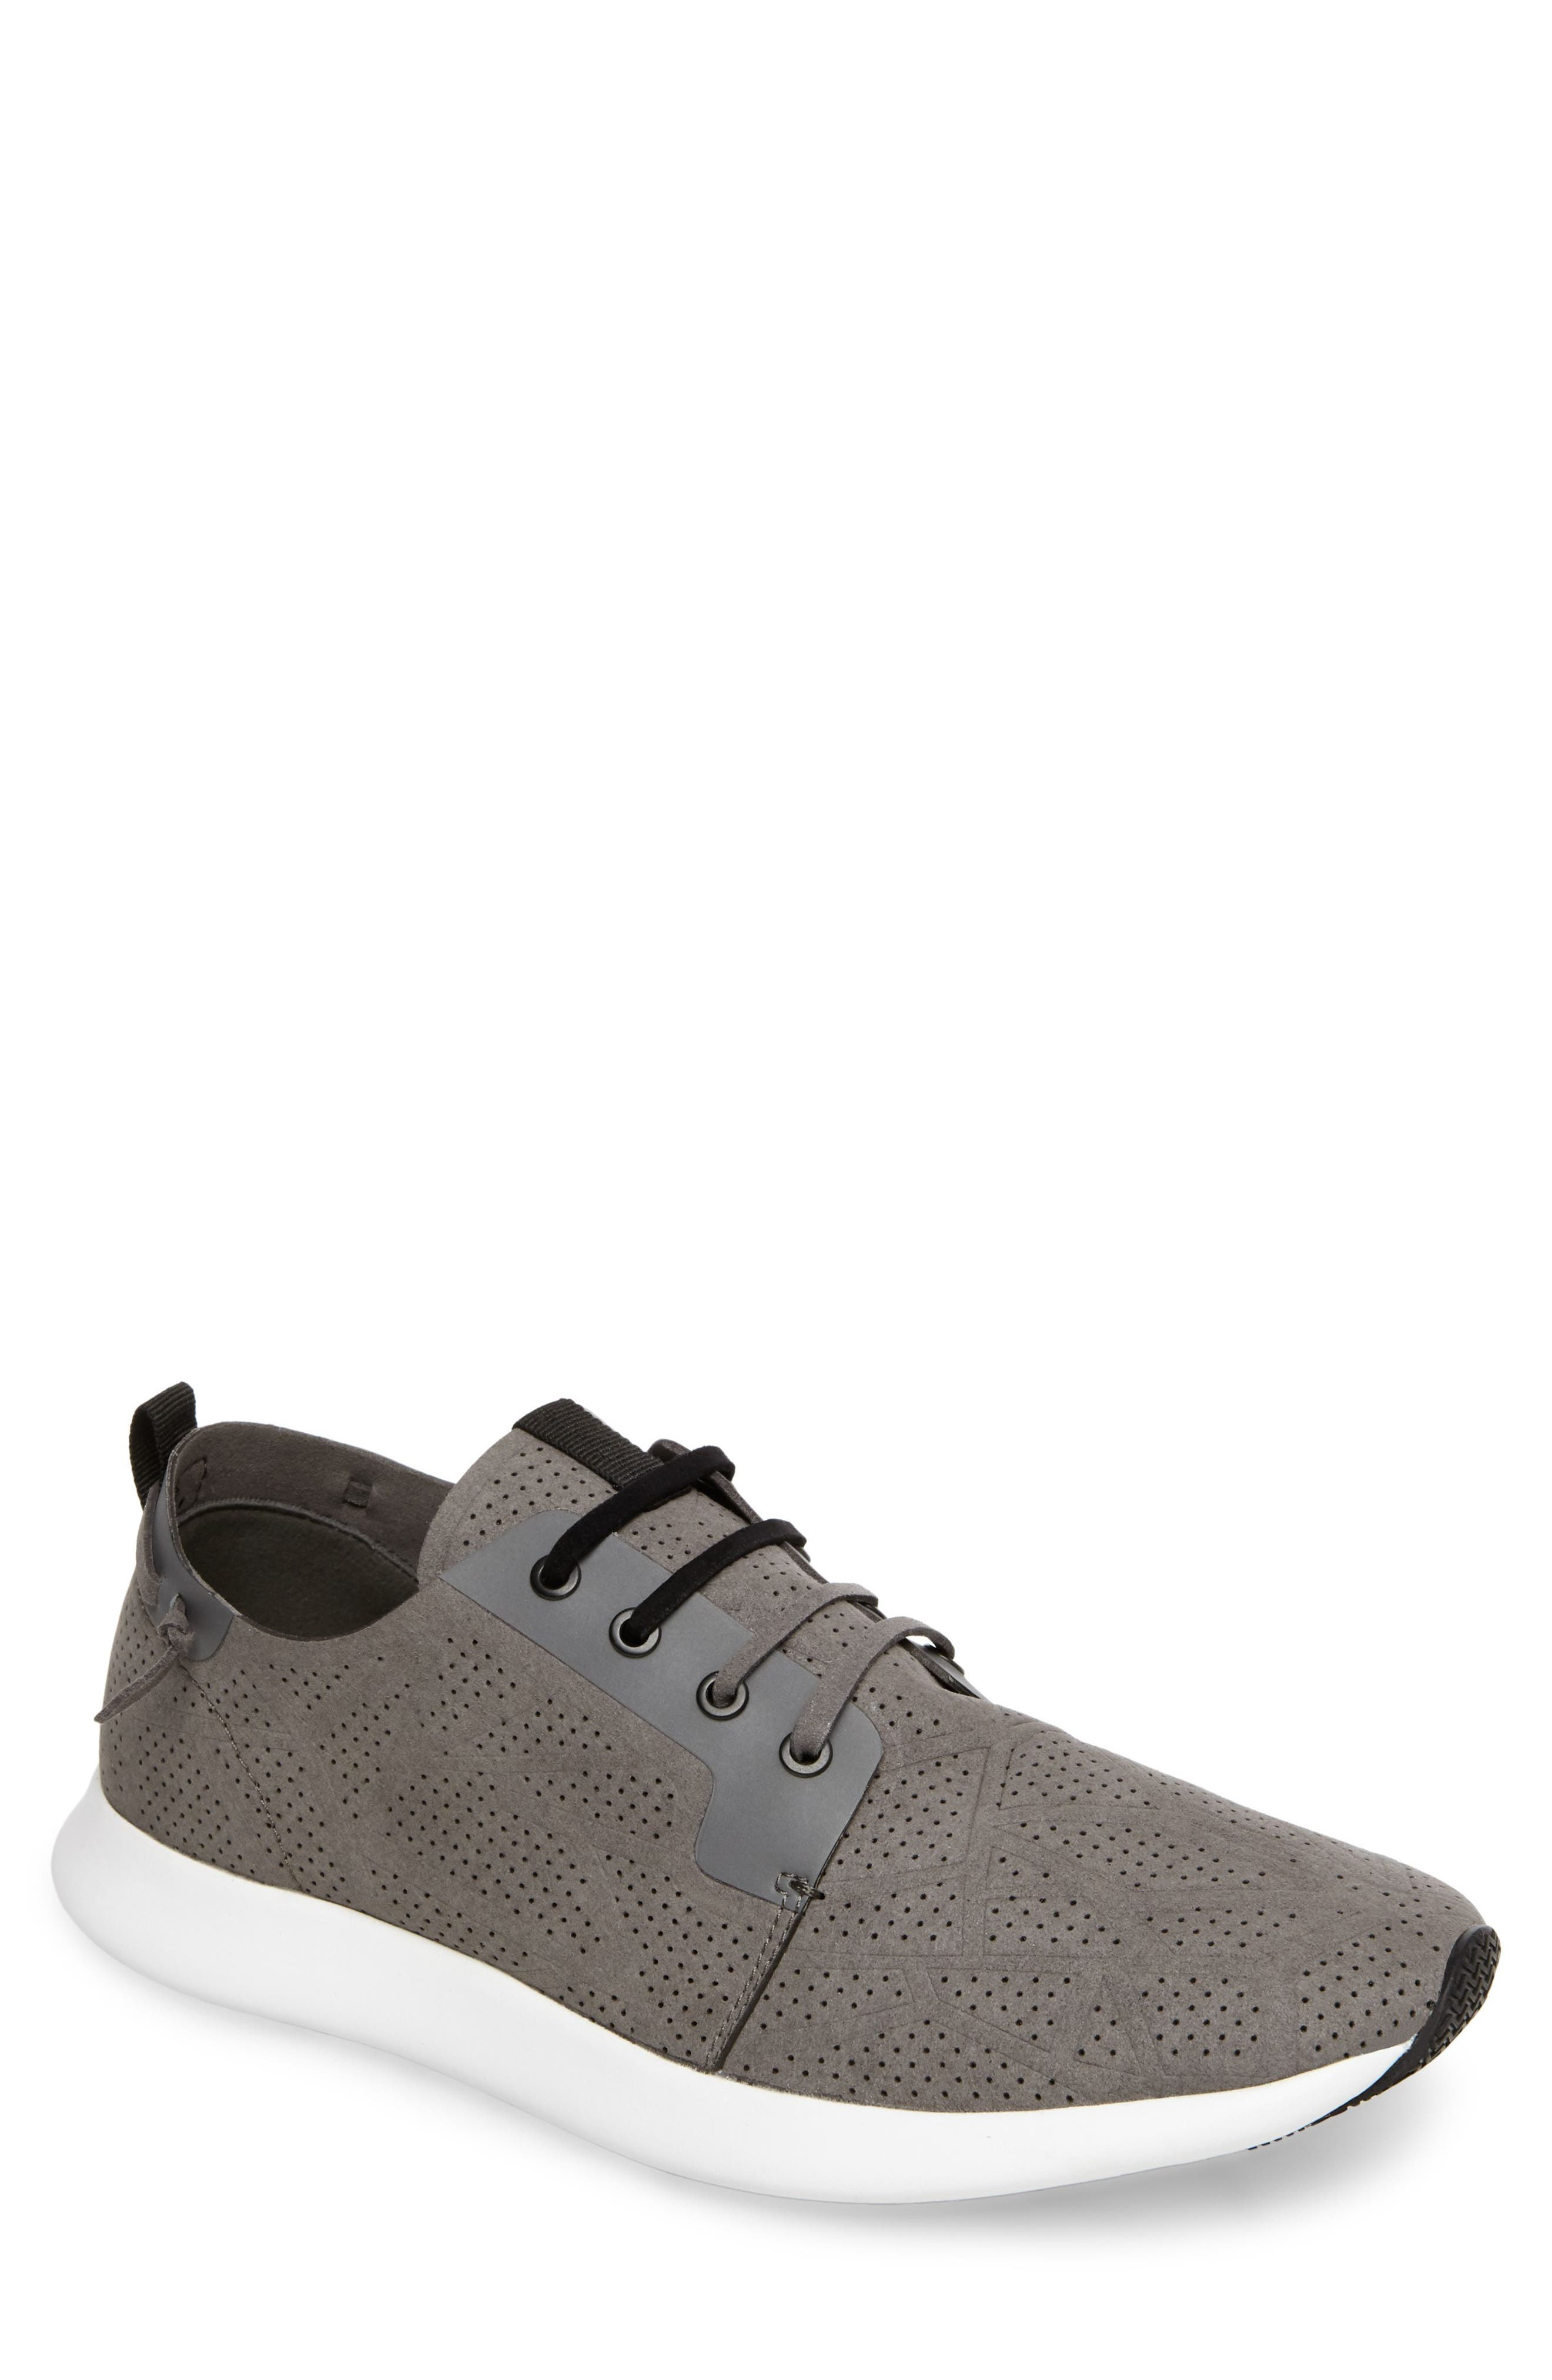 Batali Perforated Sneaker,                         Main,                         color, Grey